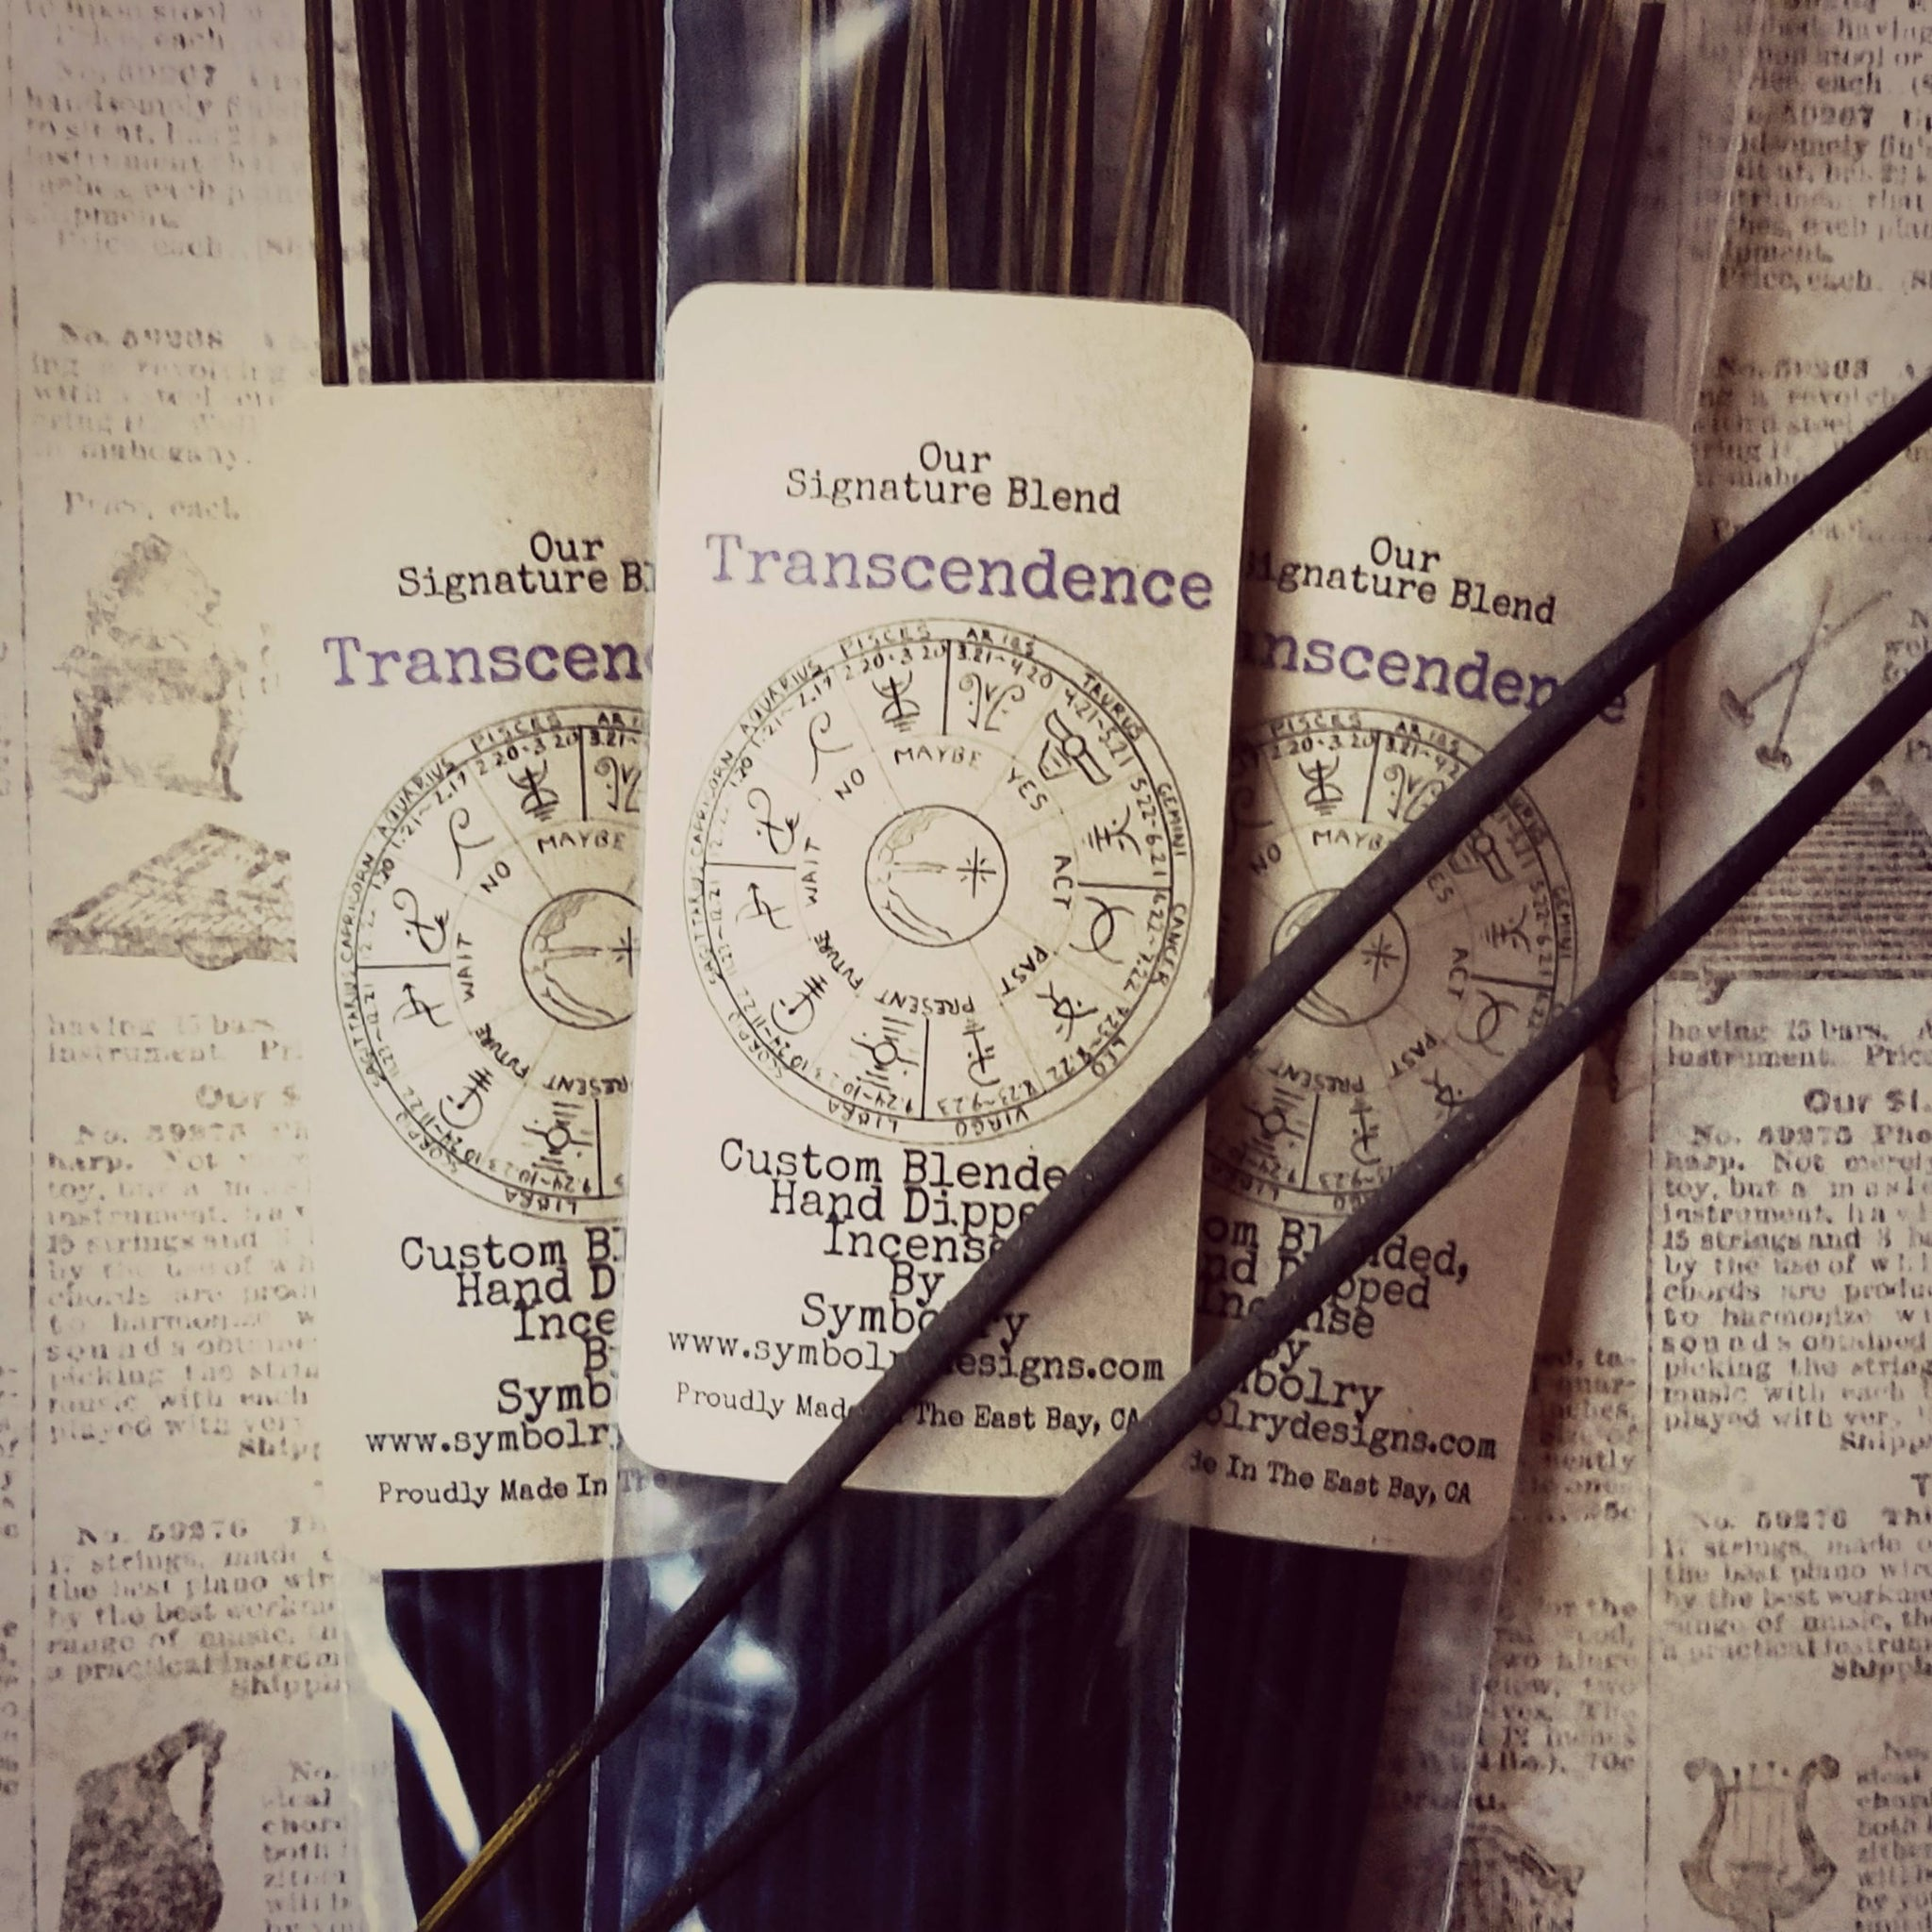 Transcendence, Custom Blended, Hand Dipped Incense Sticks